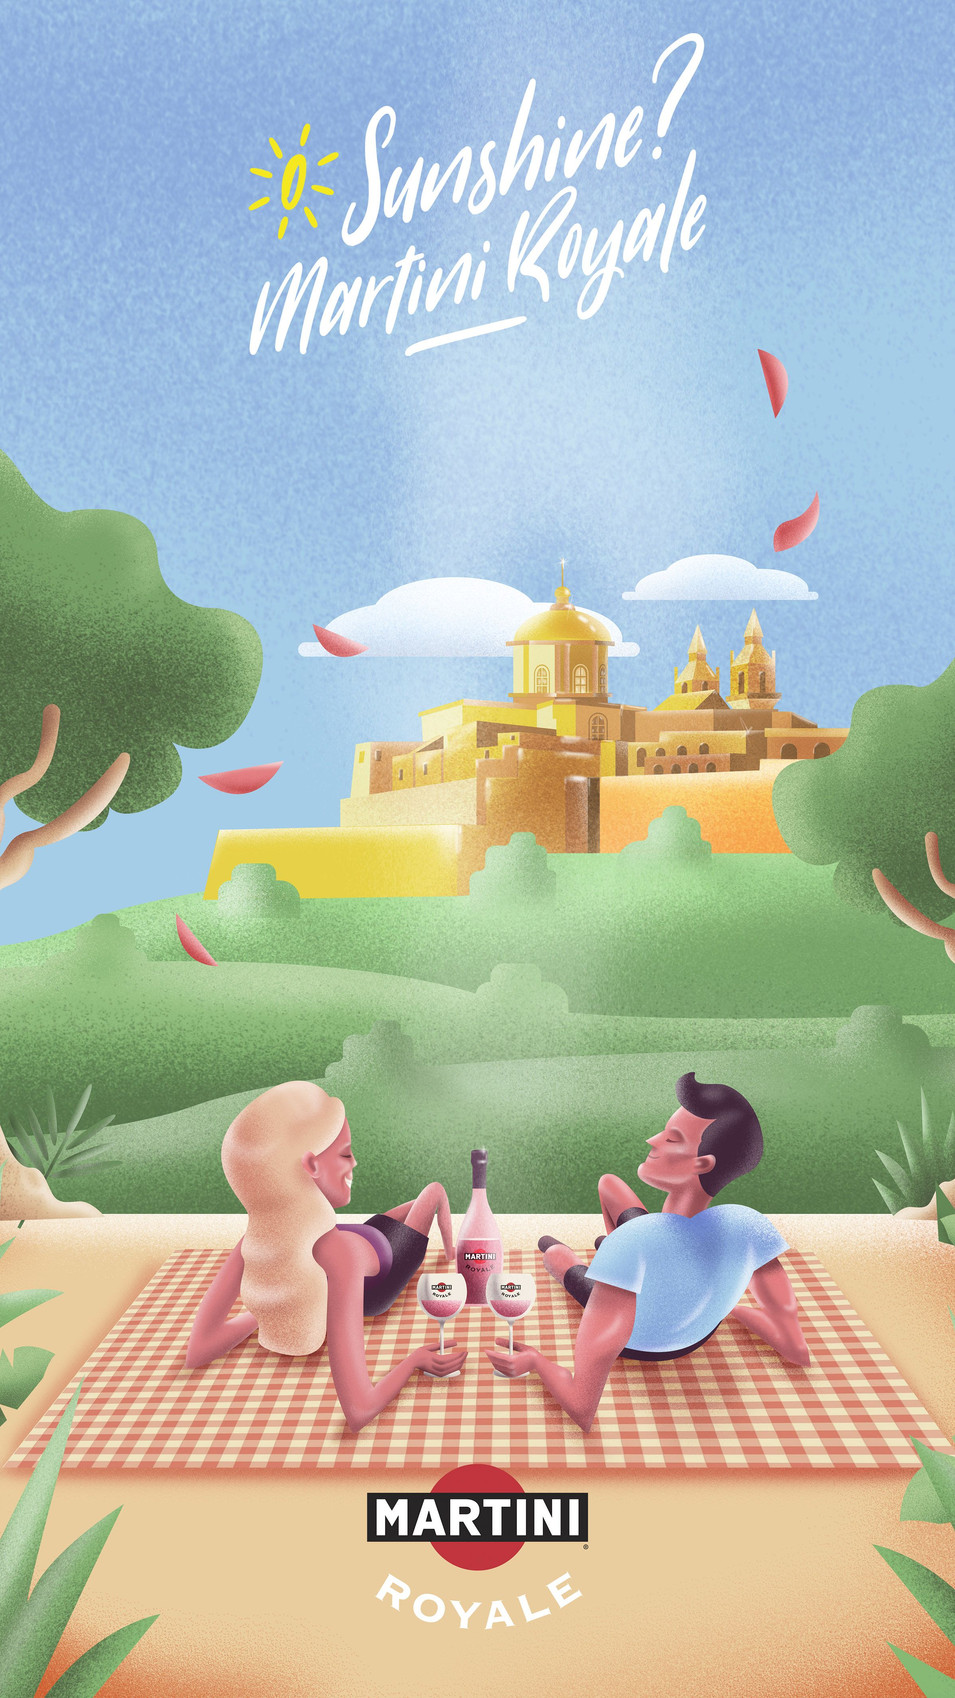 Mdina-Martini-royale-malta-ritchie-illus